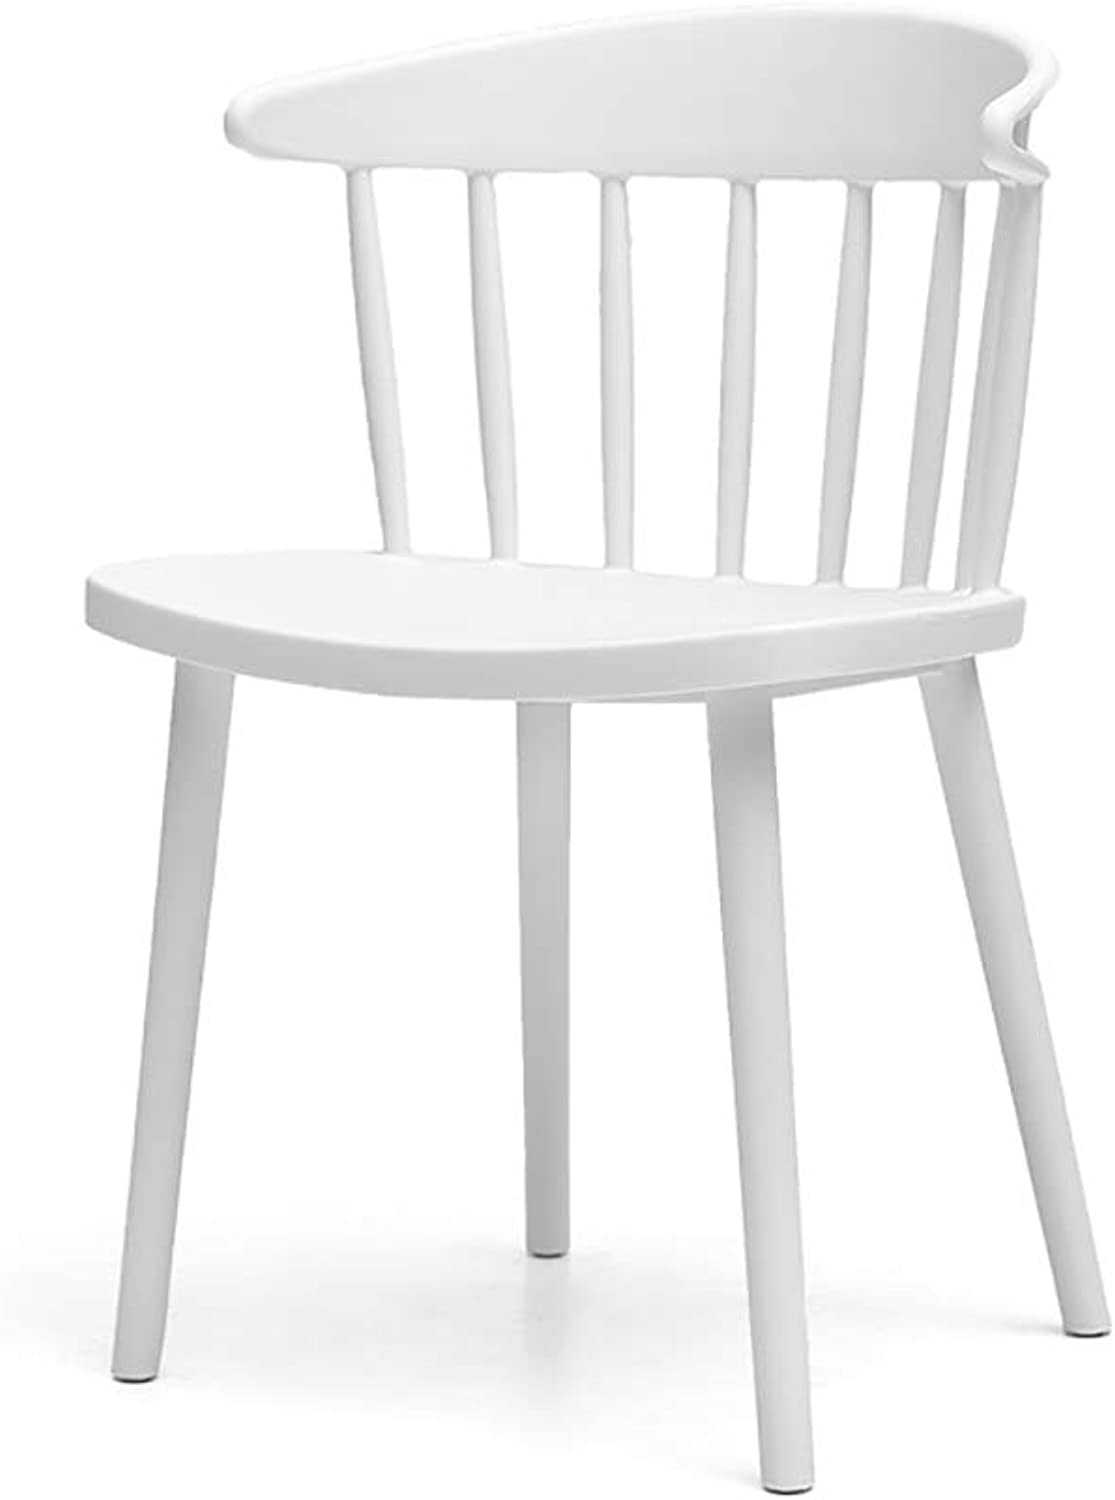 YXX-Dining chair Plastic Dining Side Chair Backrest Chairs for Kitchen, Simple Desk Chair Lazy Chair Lounge Chair (color   White)